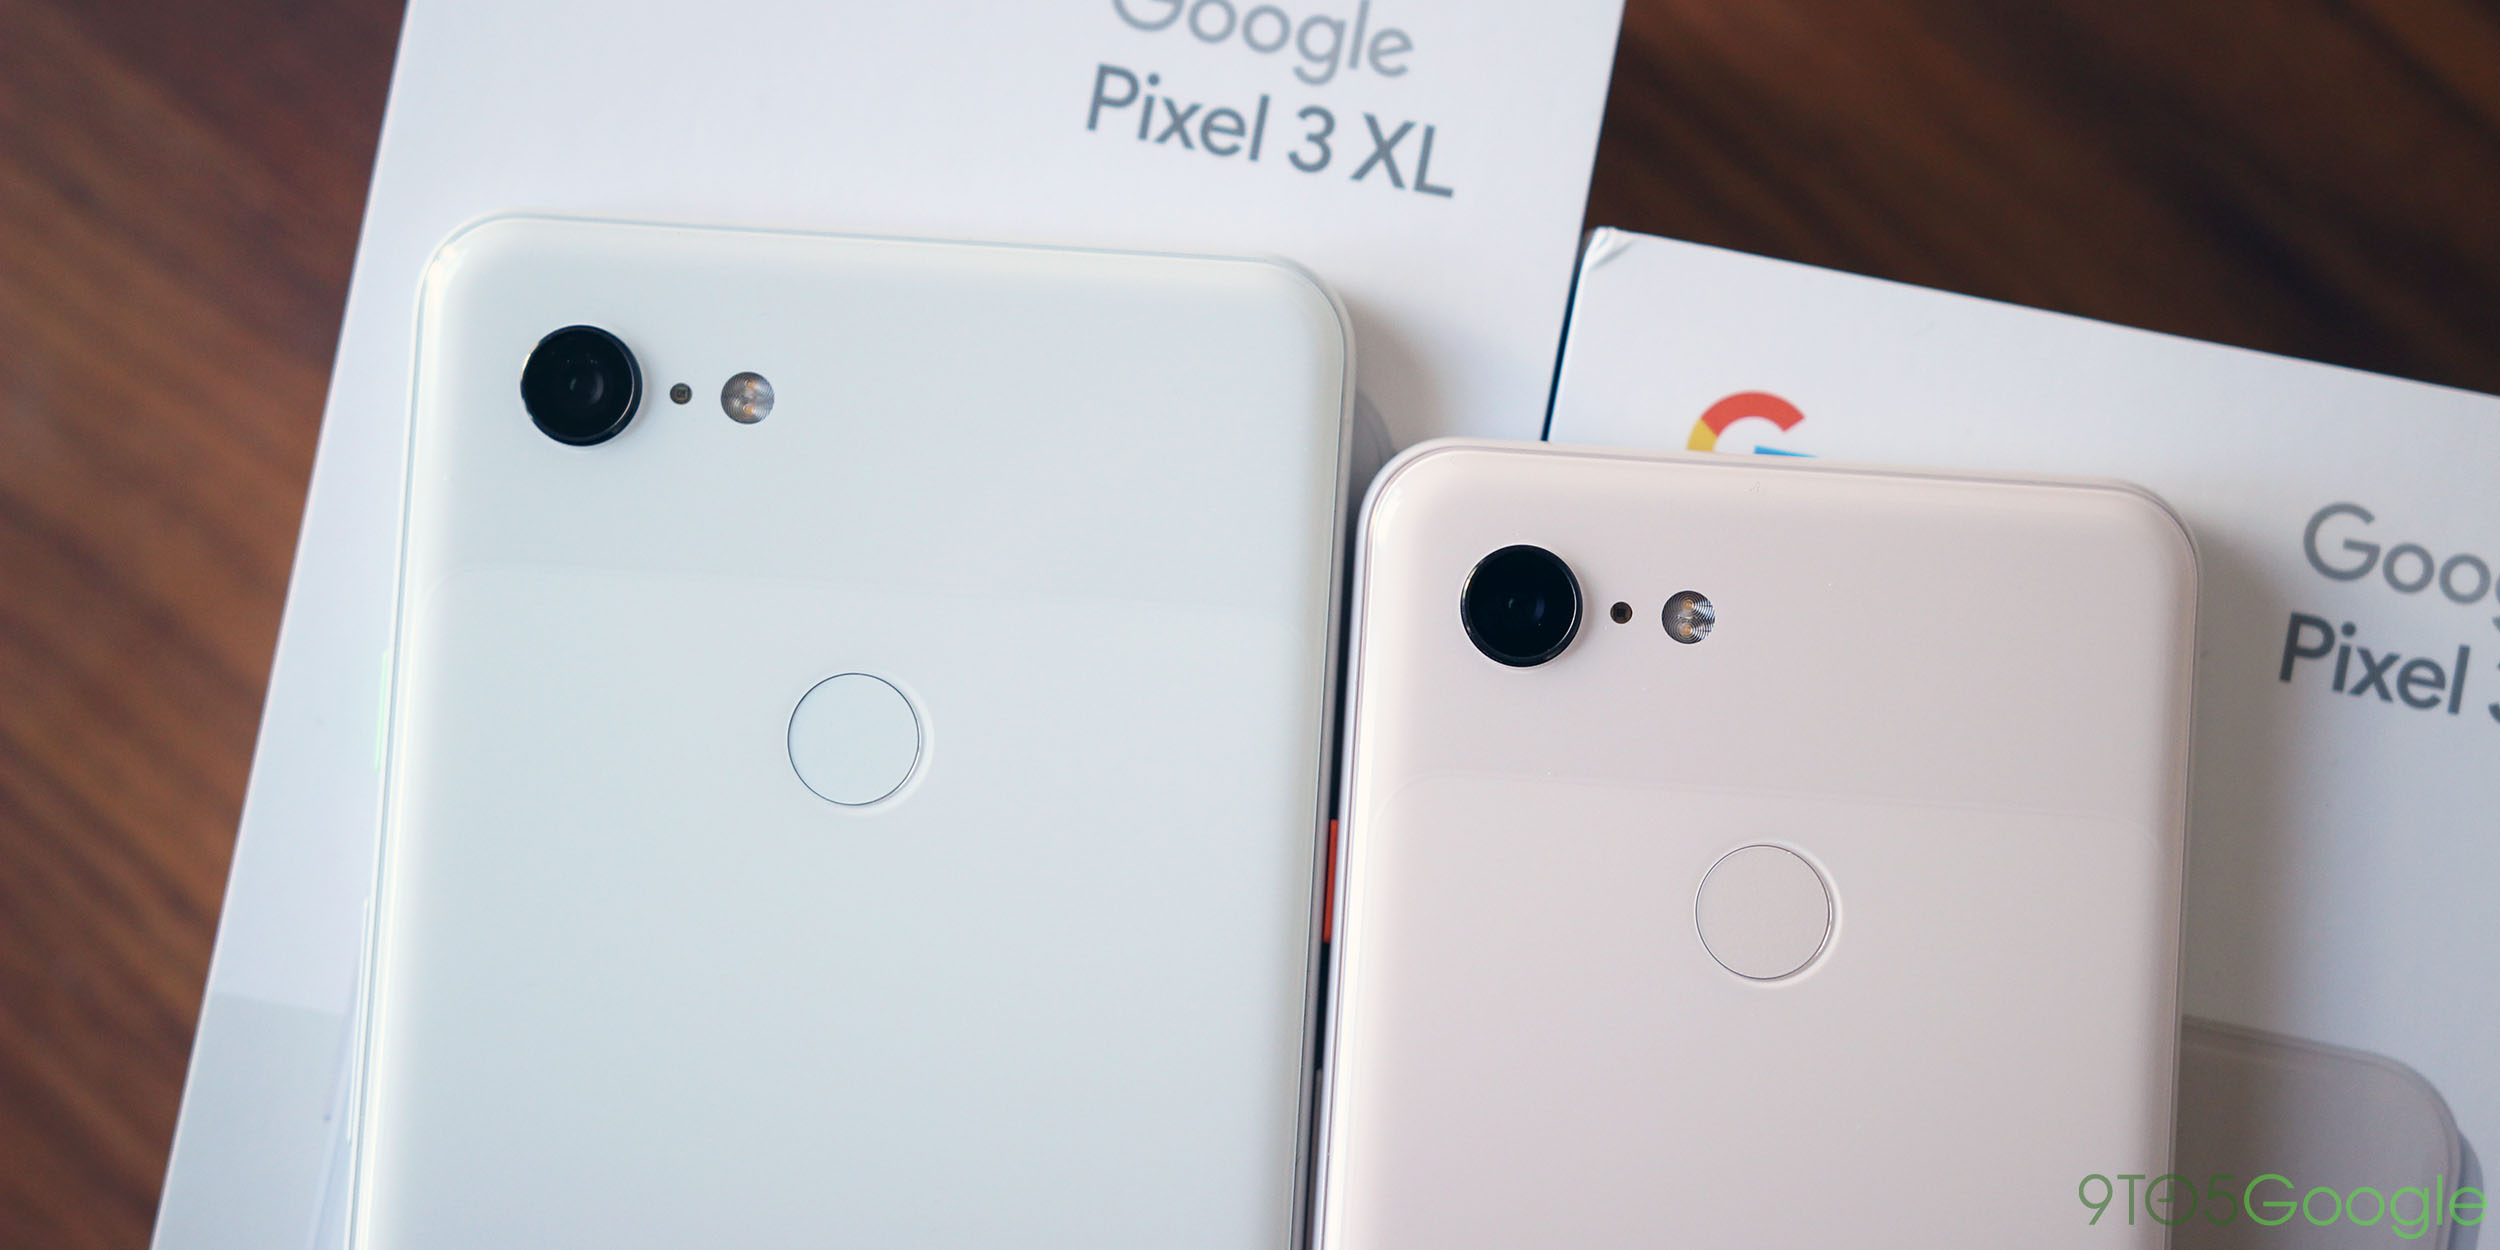 Google Pixel 3 XL: News, Specs, Where to Buy, Tips, Problems, and more